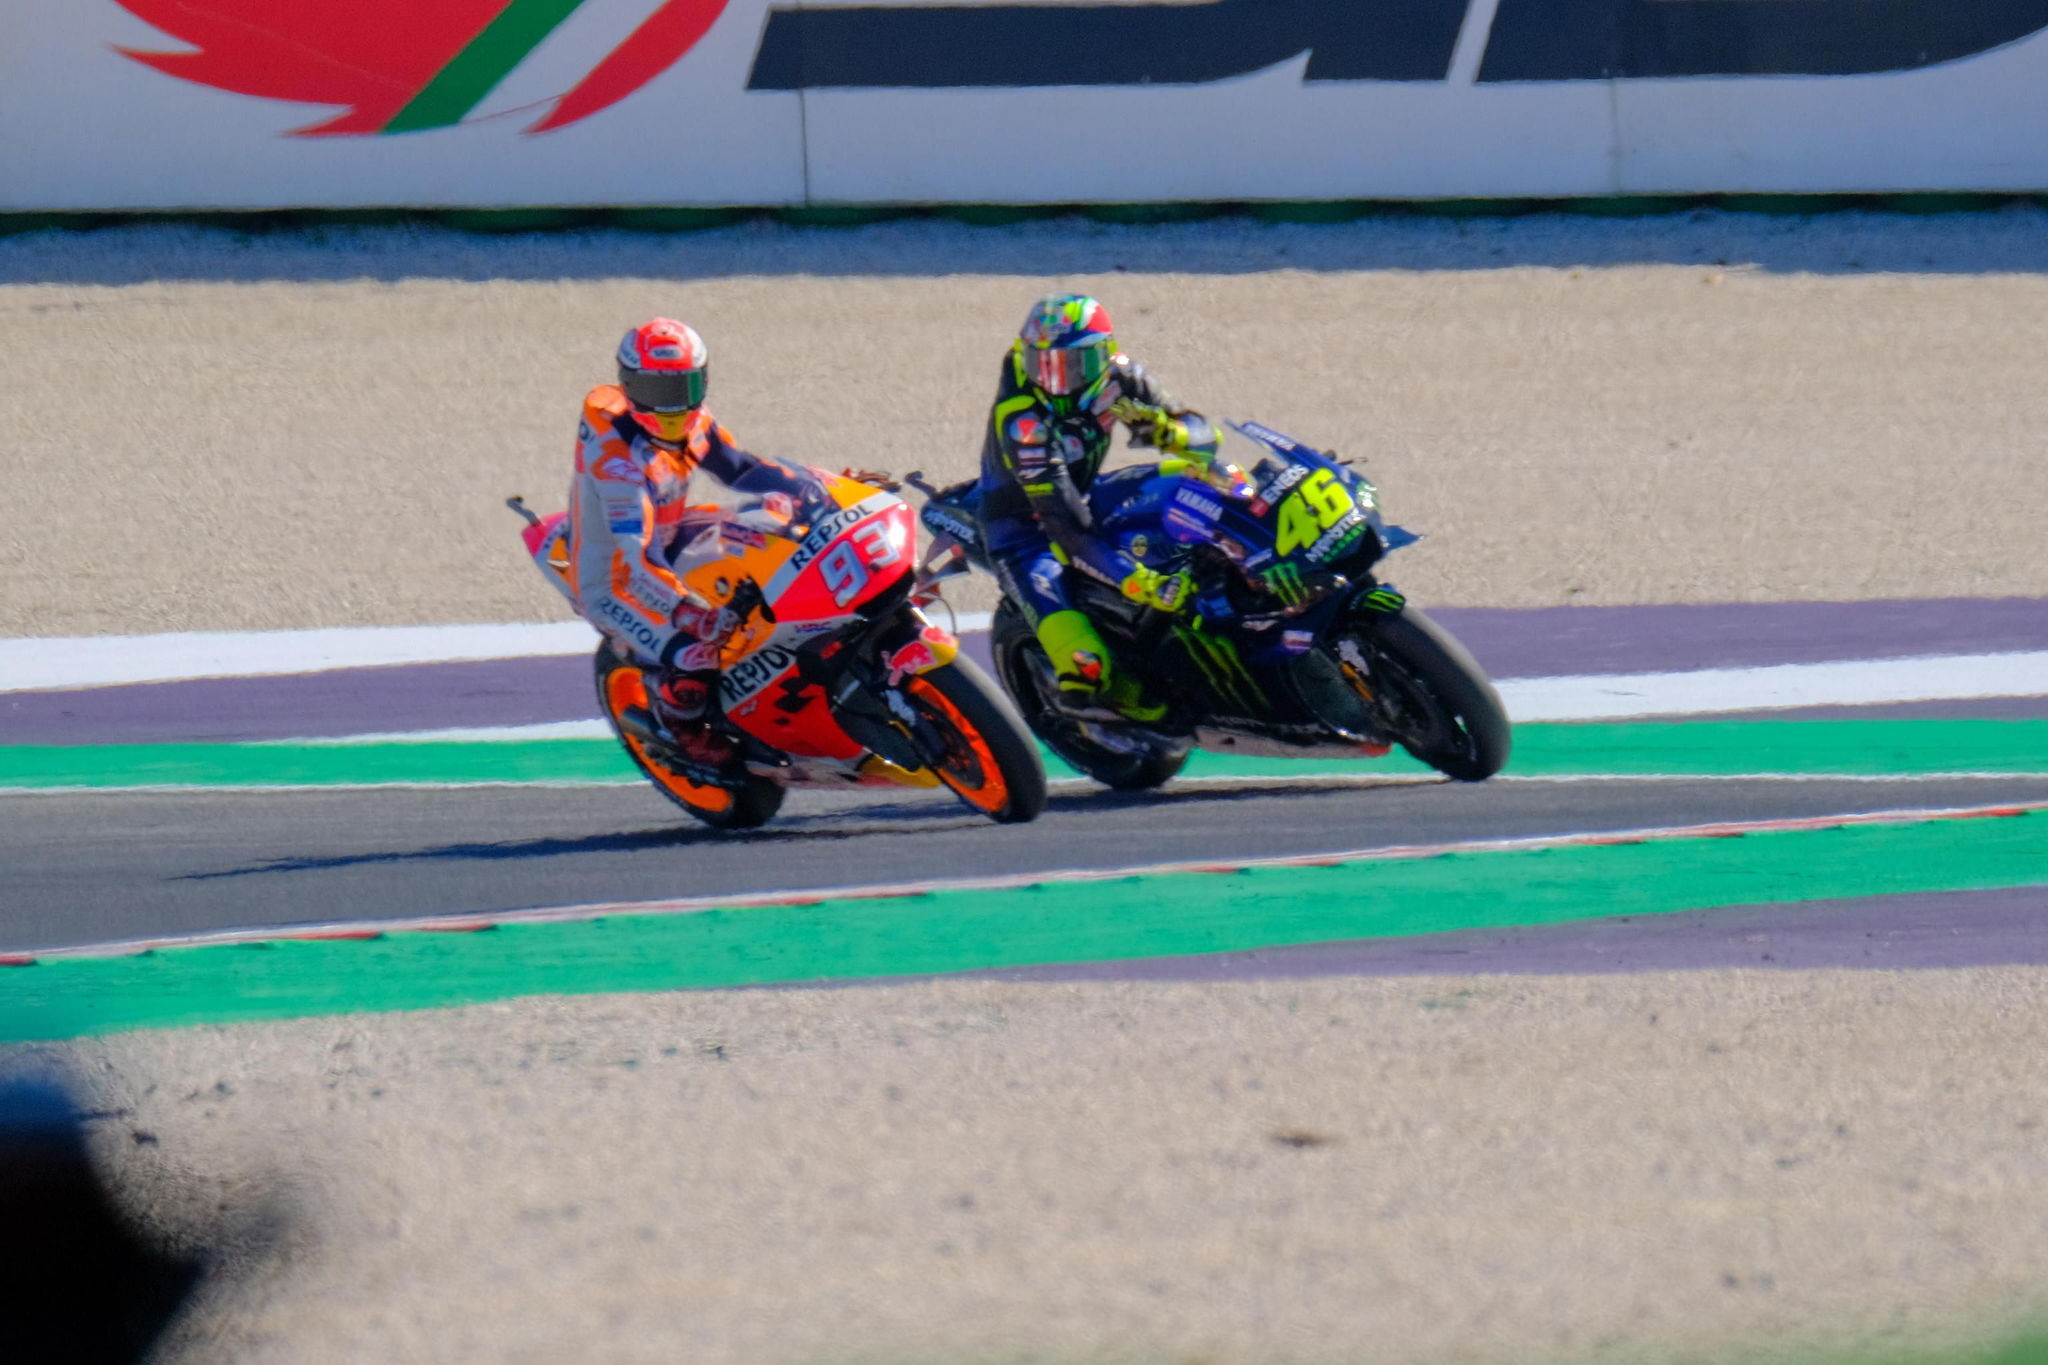 Misano Adriatico (Italy), 14/09/2019.- Spanish MotoGP rider, number 93, Marc <HIT>Marquez</HIT> (L), of the Repsol Honda Team and Italian MotoGP rider, number 46 Valentino <HIT>Rossi</HIT>, of the Yamaha Factory Racing in action during the free practice/qualifying session of the 2019 Motorcycling Grand Prix of San Marino and Riviera di Rimini at Misano Circuit in Misano Adriatico, Italy, 14 September 2019. (Motociclismo, Ciclismo, Italia) EFE/EPA/ALESSIO MARINI